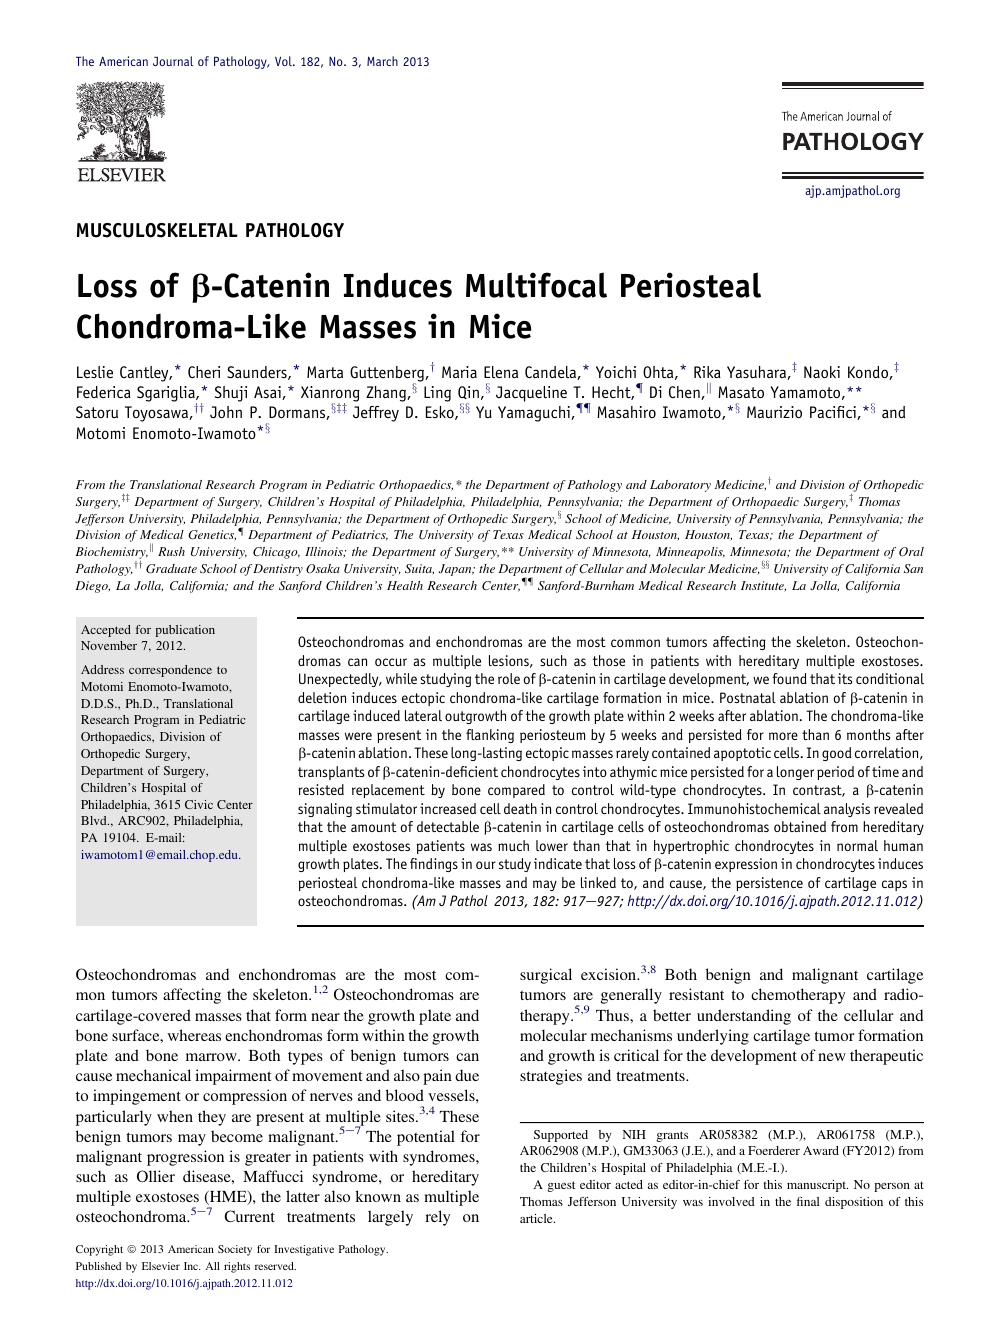 Loss of β-Catenin Induces Multifocal Periosteal Chondroma